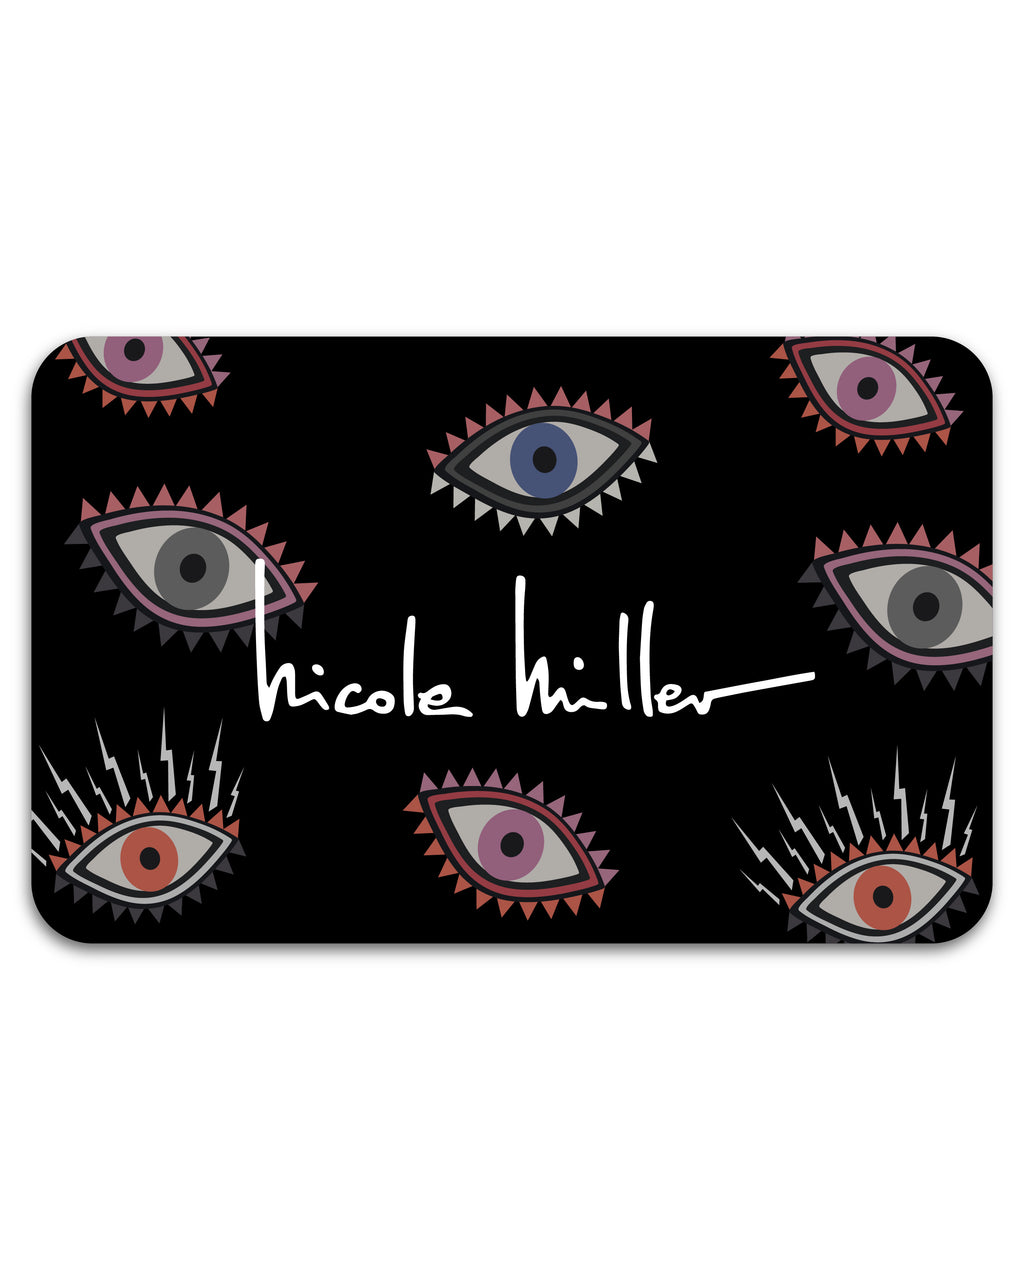 GC50 - $50 Nicole Miller e-Gift Card - accessories - gift cards - $50 Nicole Miller e-Gift Card